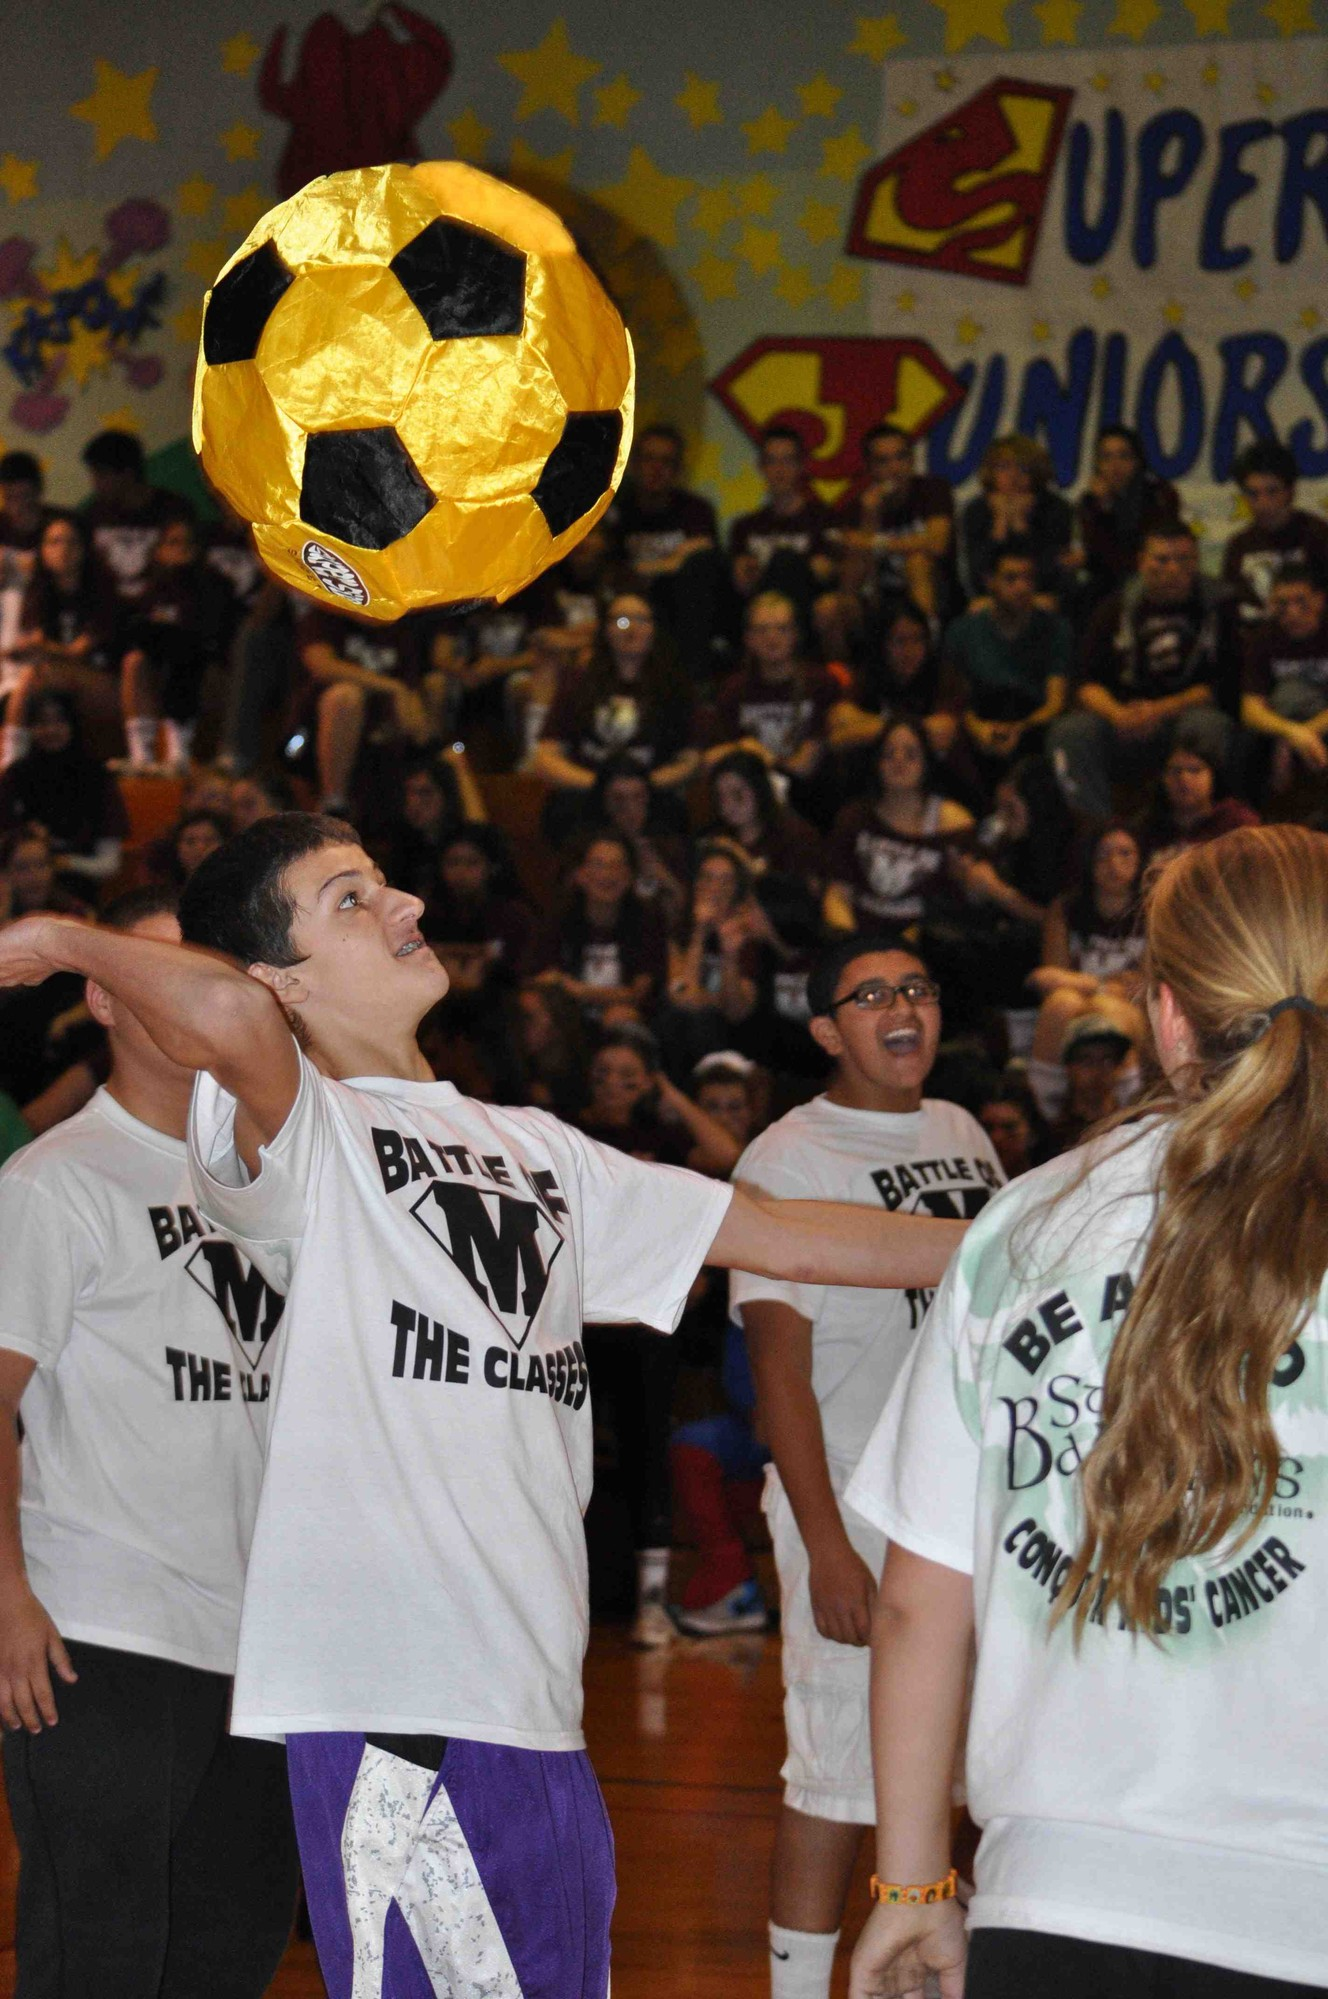 During Battle of the Classes, the freshmen took on the sophomores in volleyball.